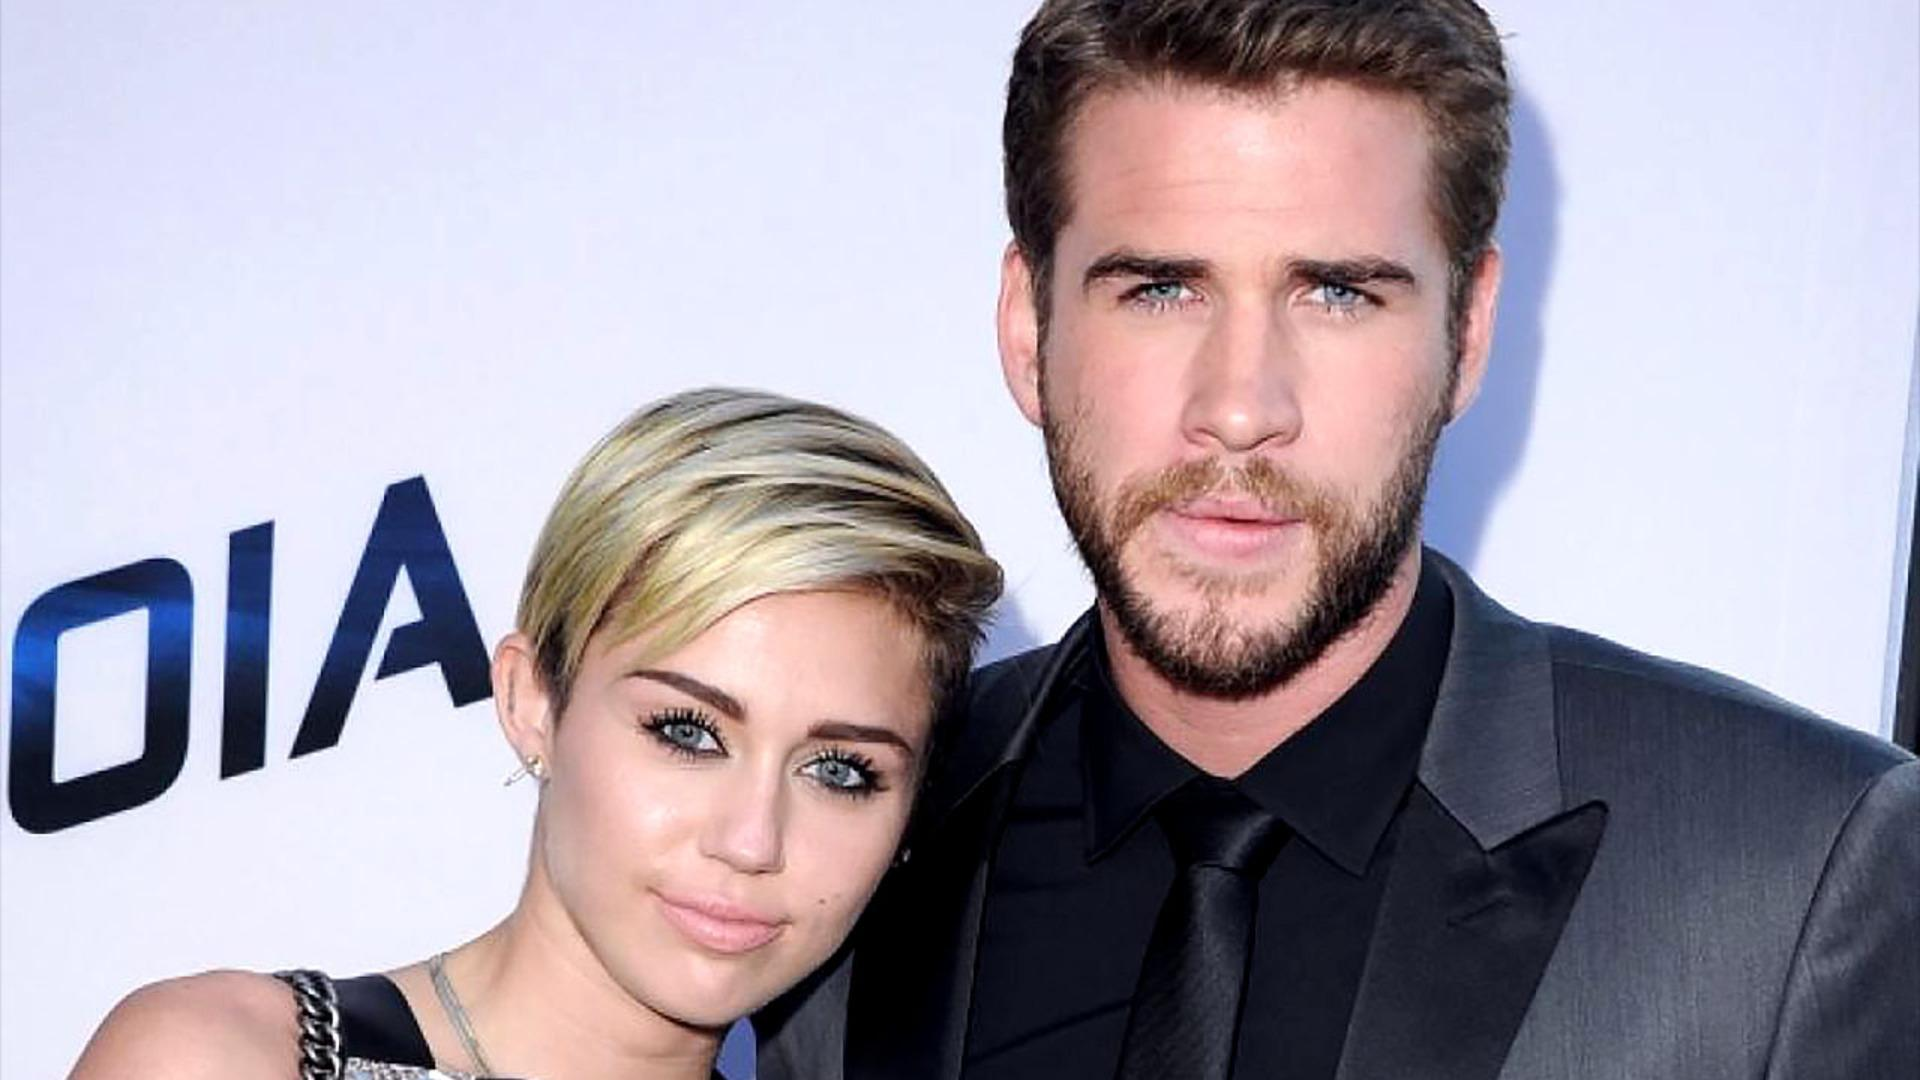 Miley Cyrus & Liam Hemsworth Travel to Australia Together to Visit Liam's Family